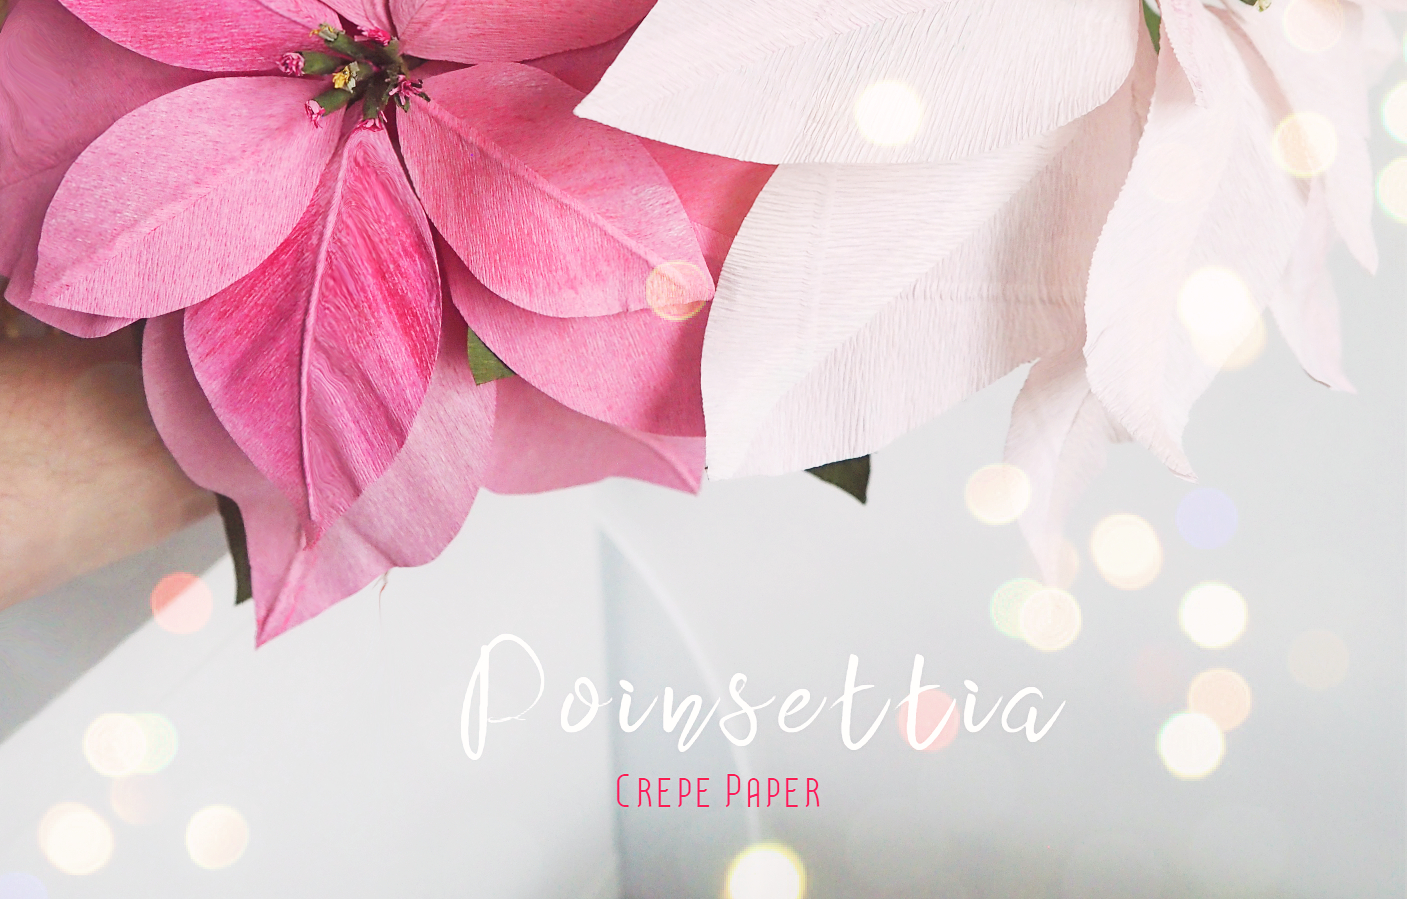 Colorful Potted Poinsettias - crepe paper design